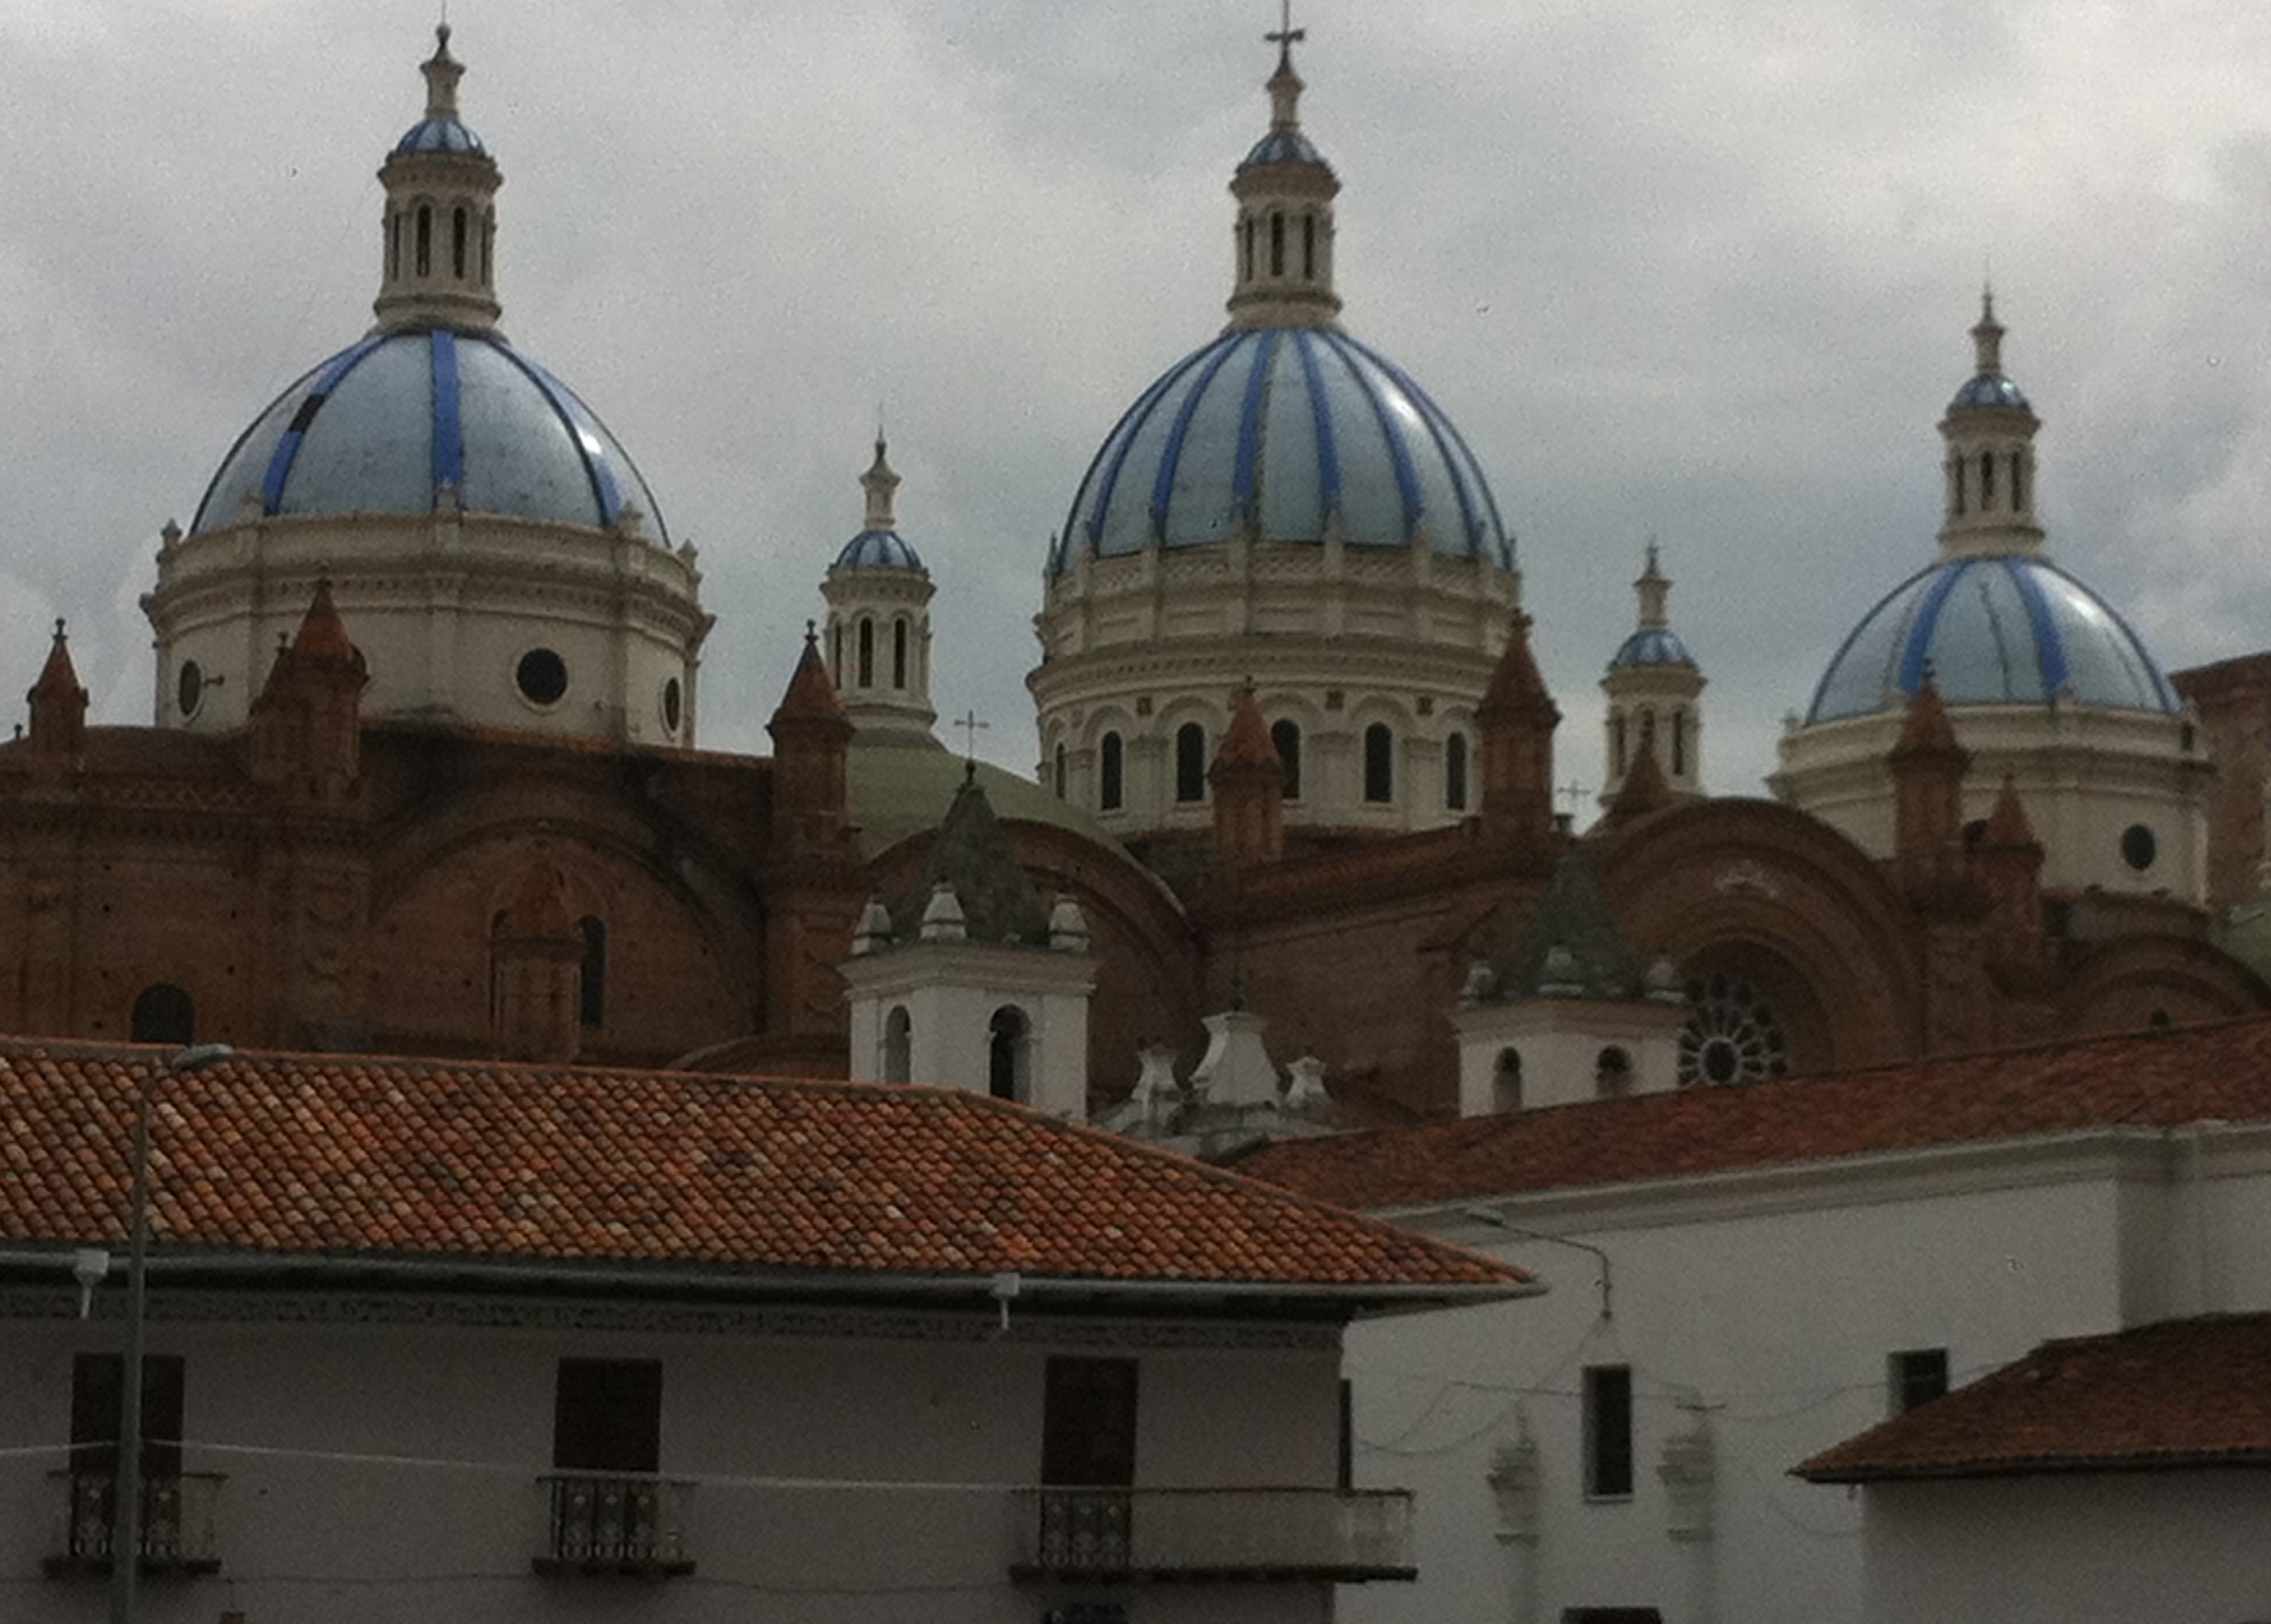 Majestic old churches, everywhere you looked!